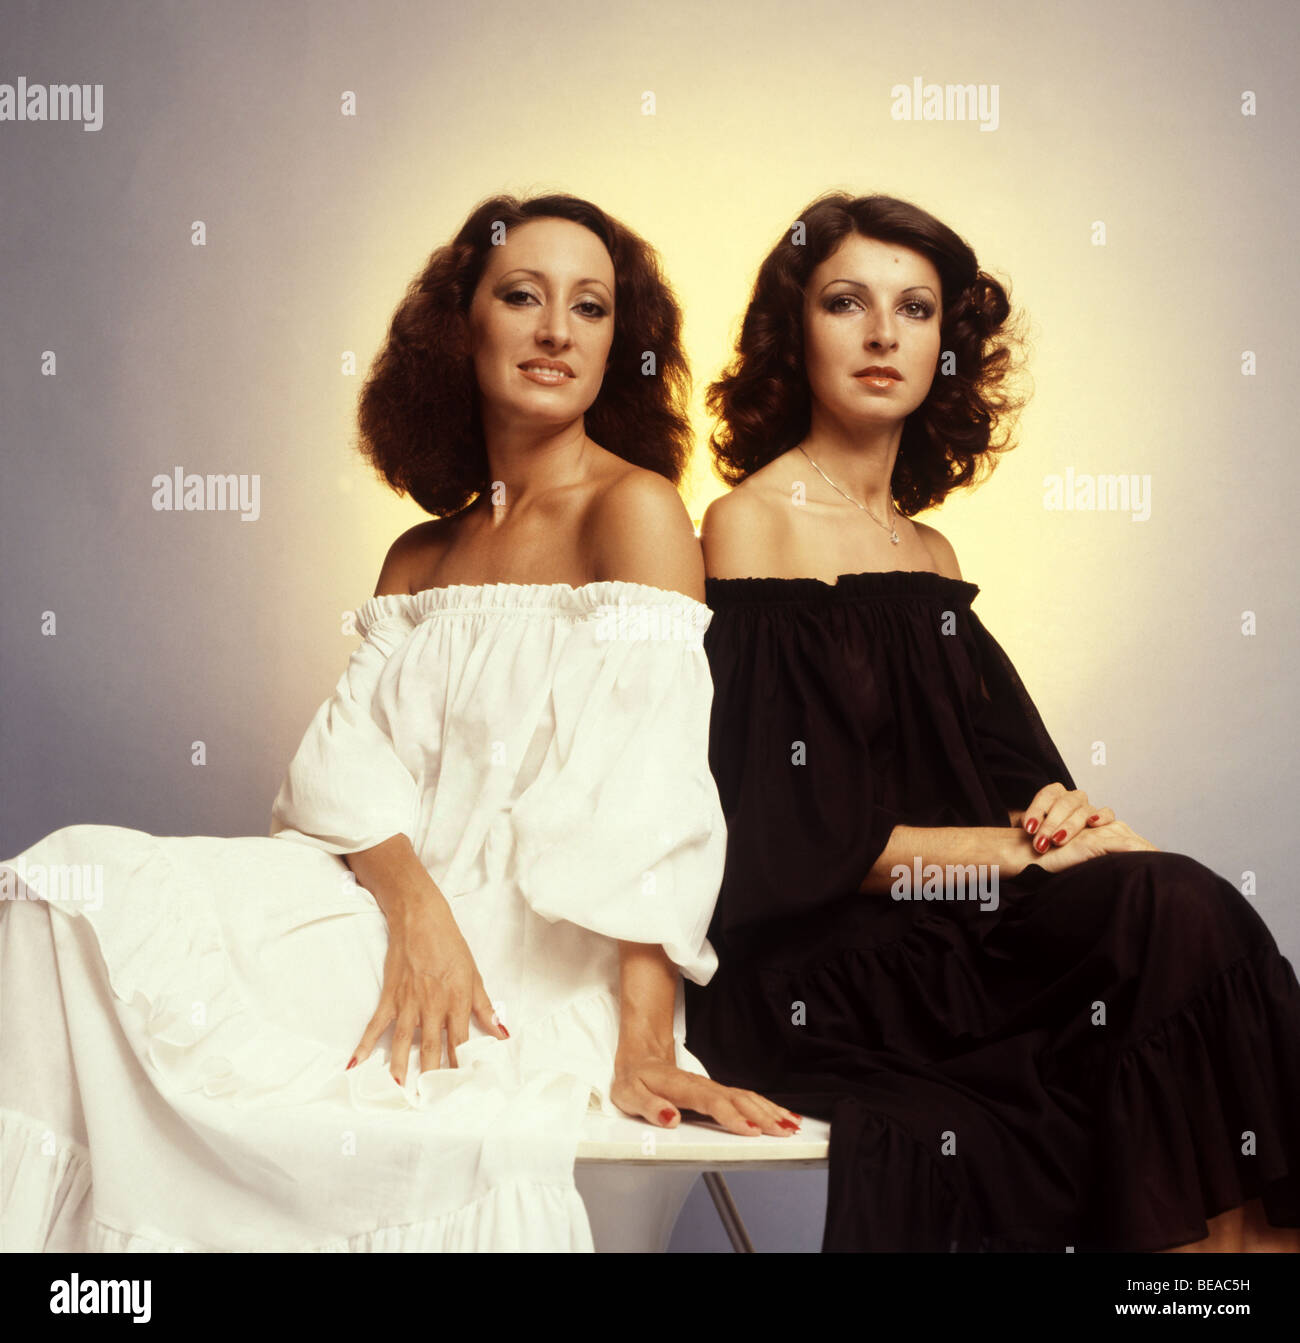 Baccara Spanish Pop Duo In 1977 Maria Mendiola And Mayte Mateos Stock Photo 26044637 Alamy - Baccara